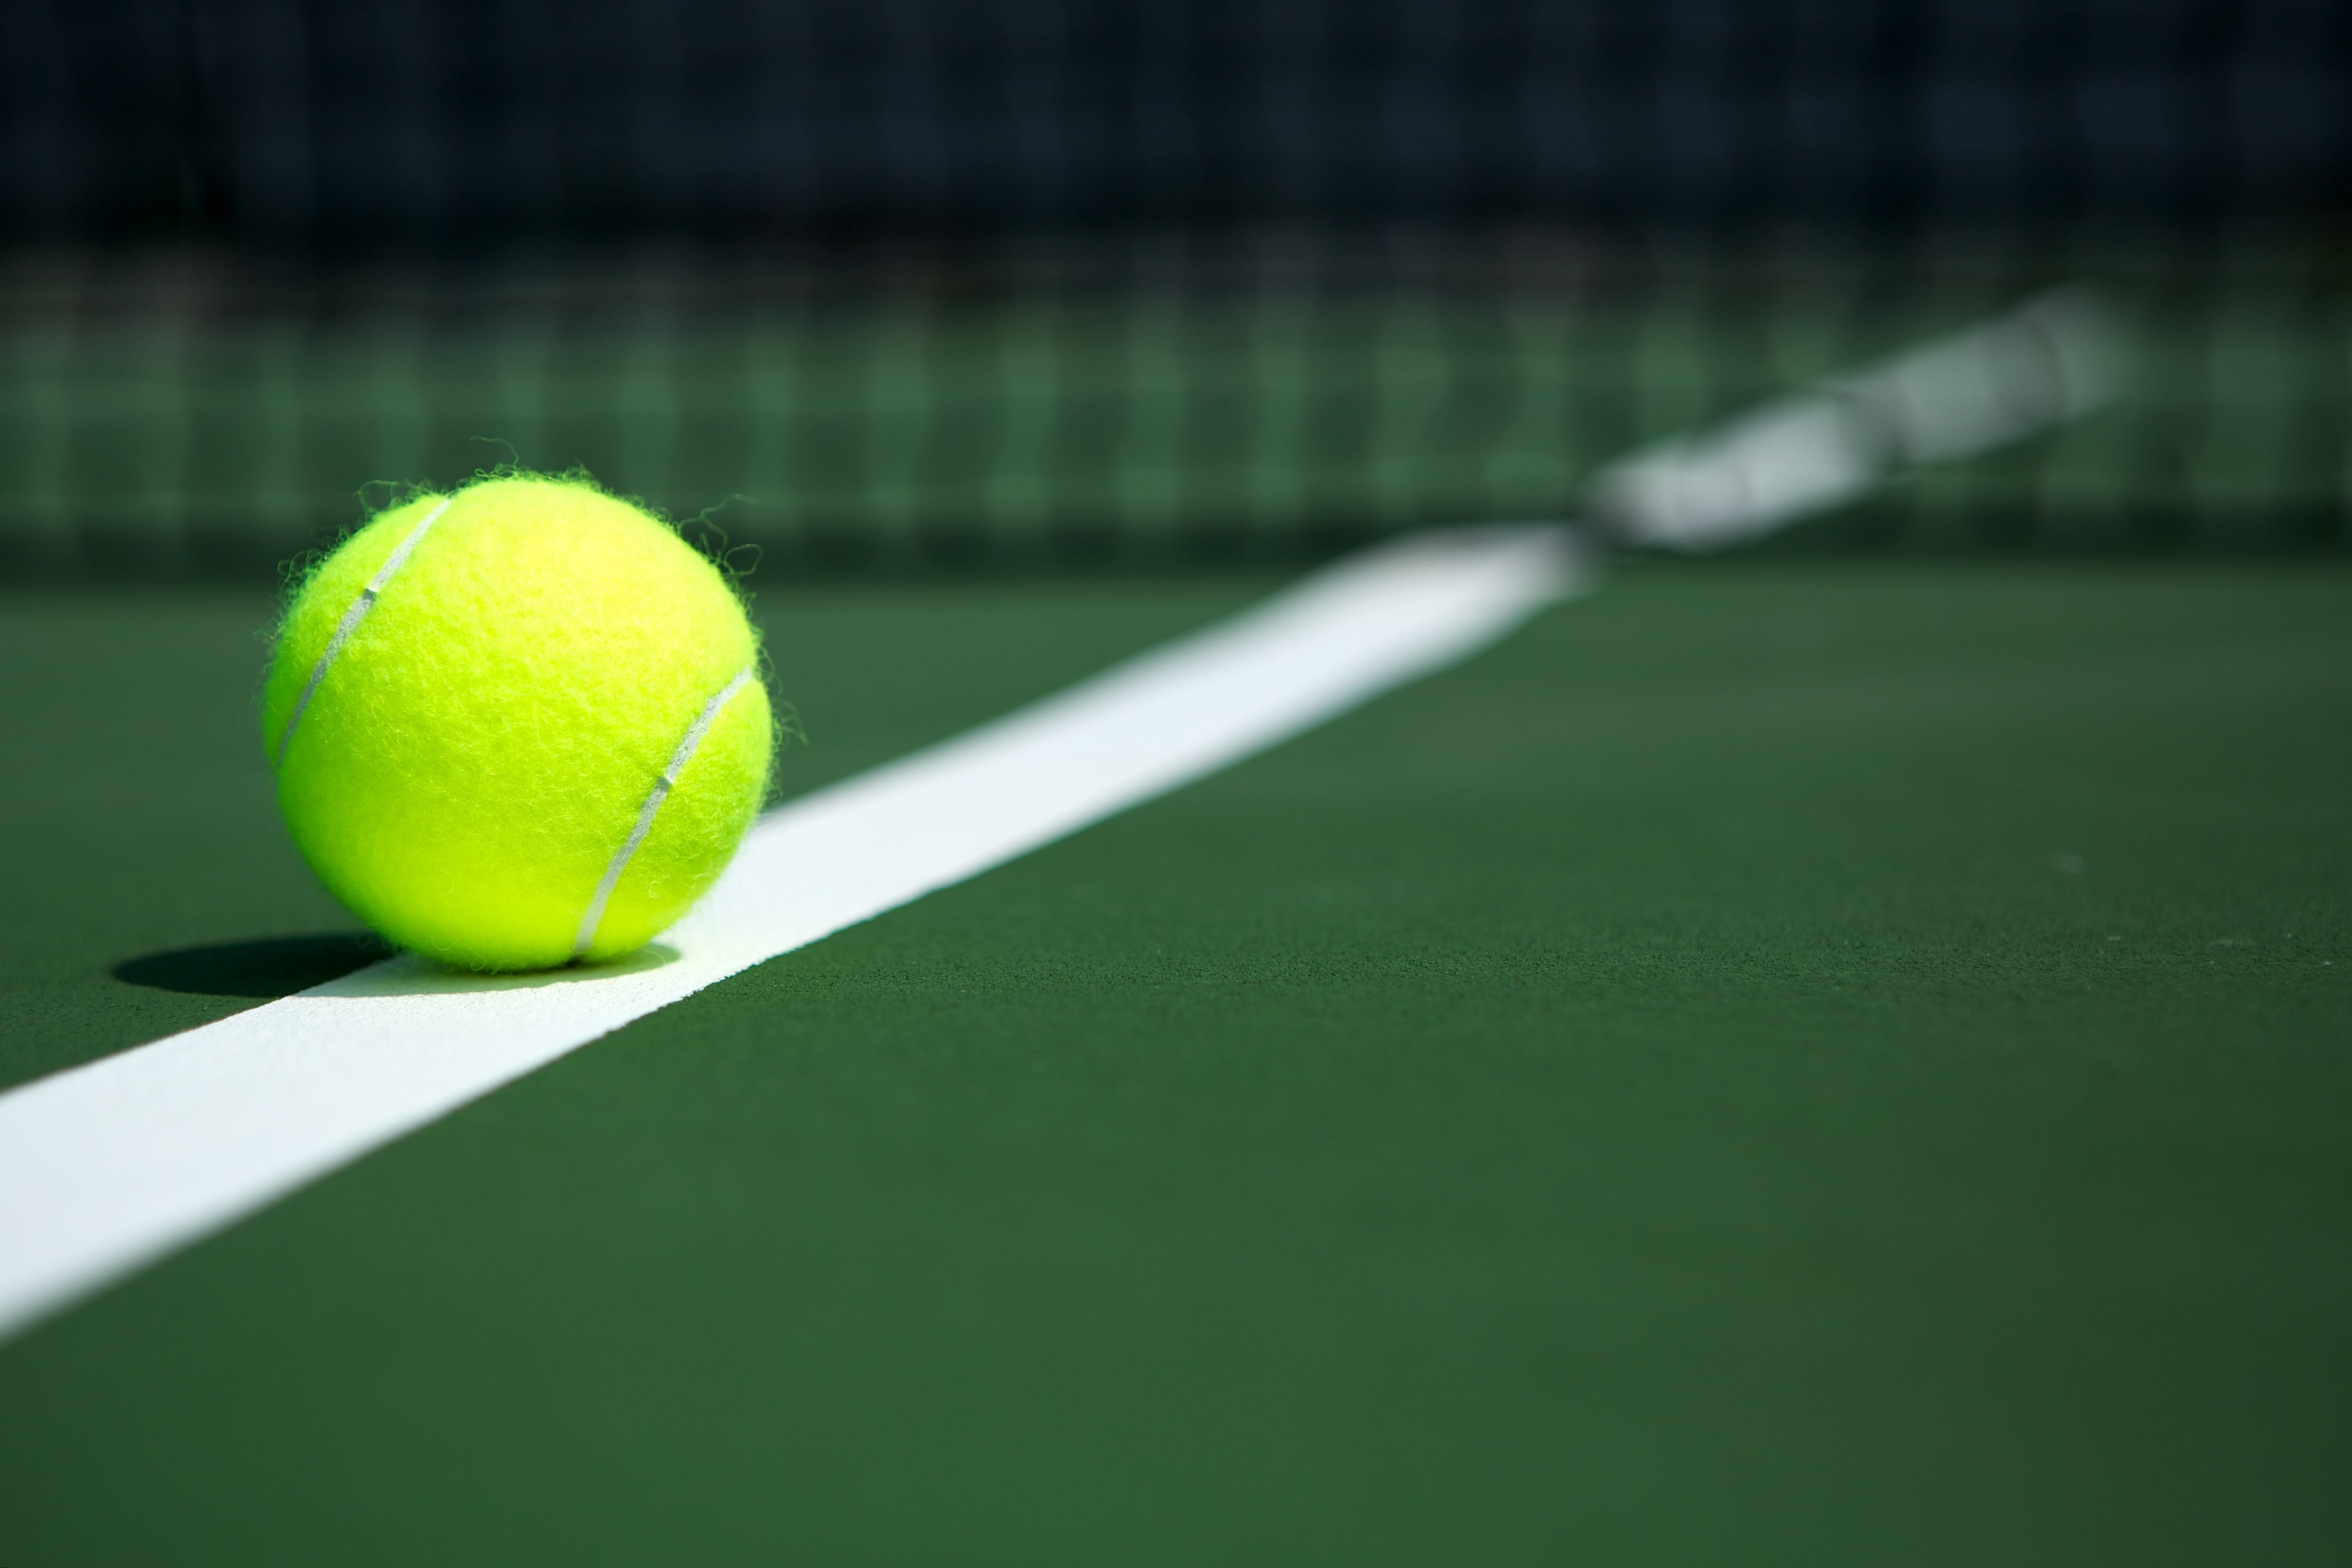 Close up of tennis ball on the court.